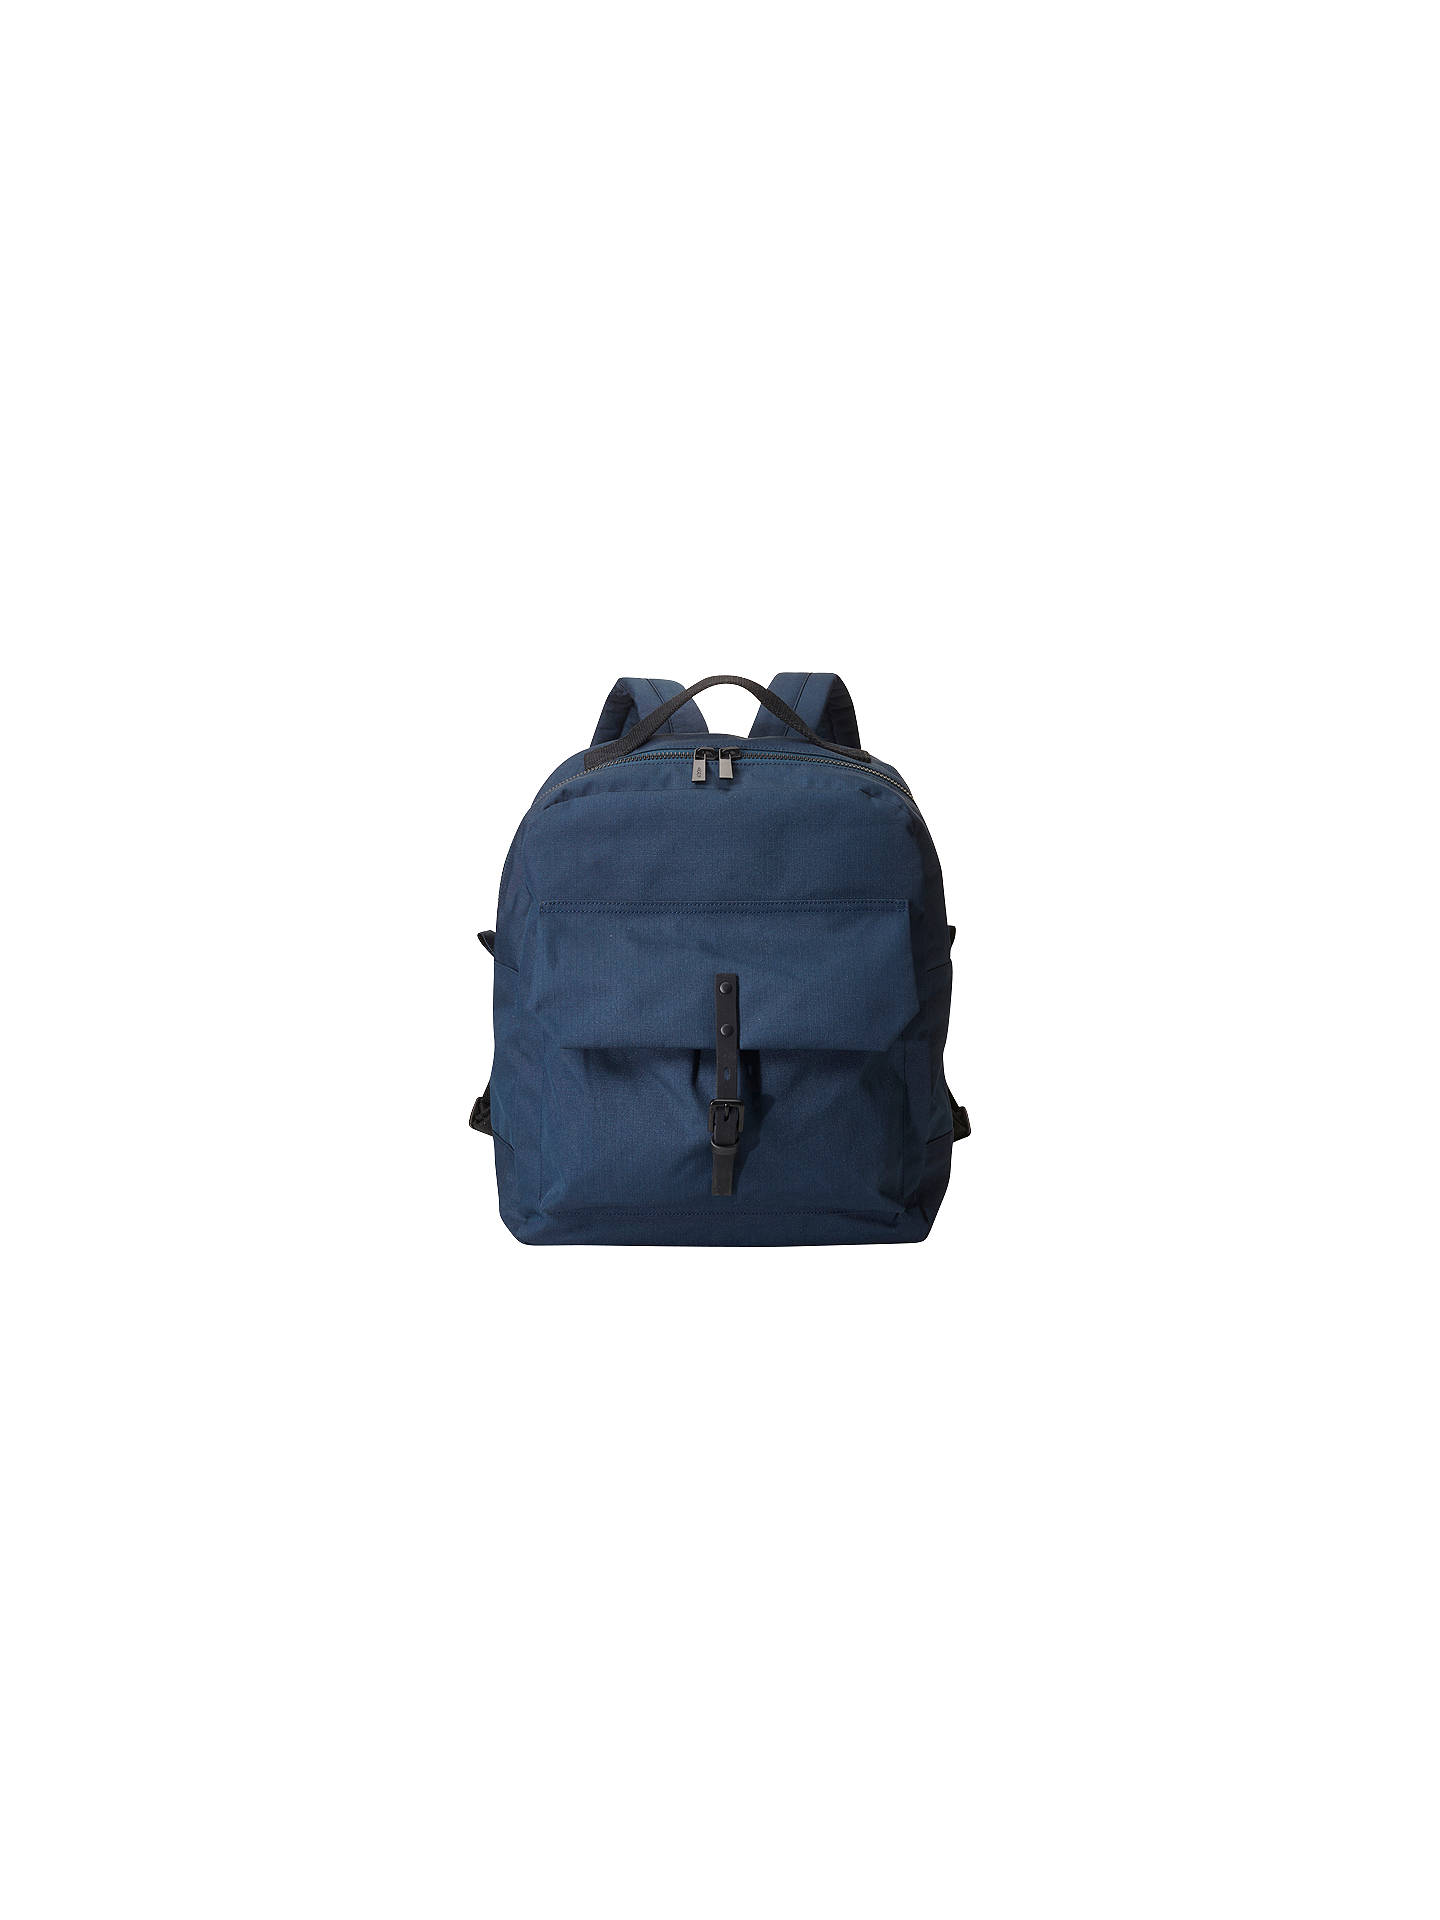 BuyAlly Capellino Ian Ripstop Nylon Backpack 0fe4bfbd52e74